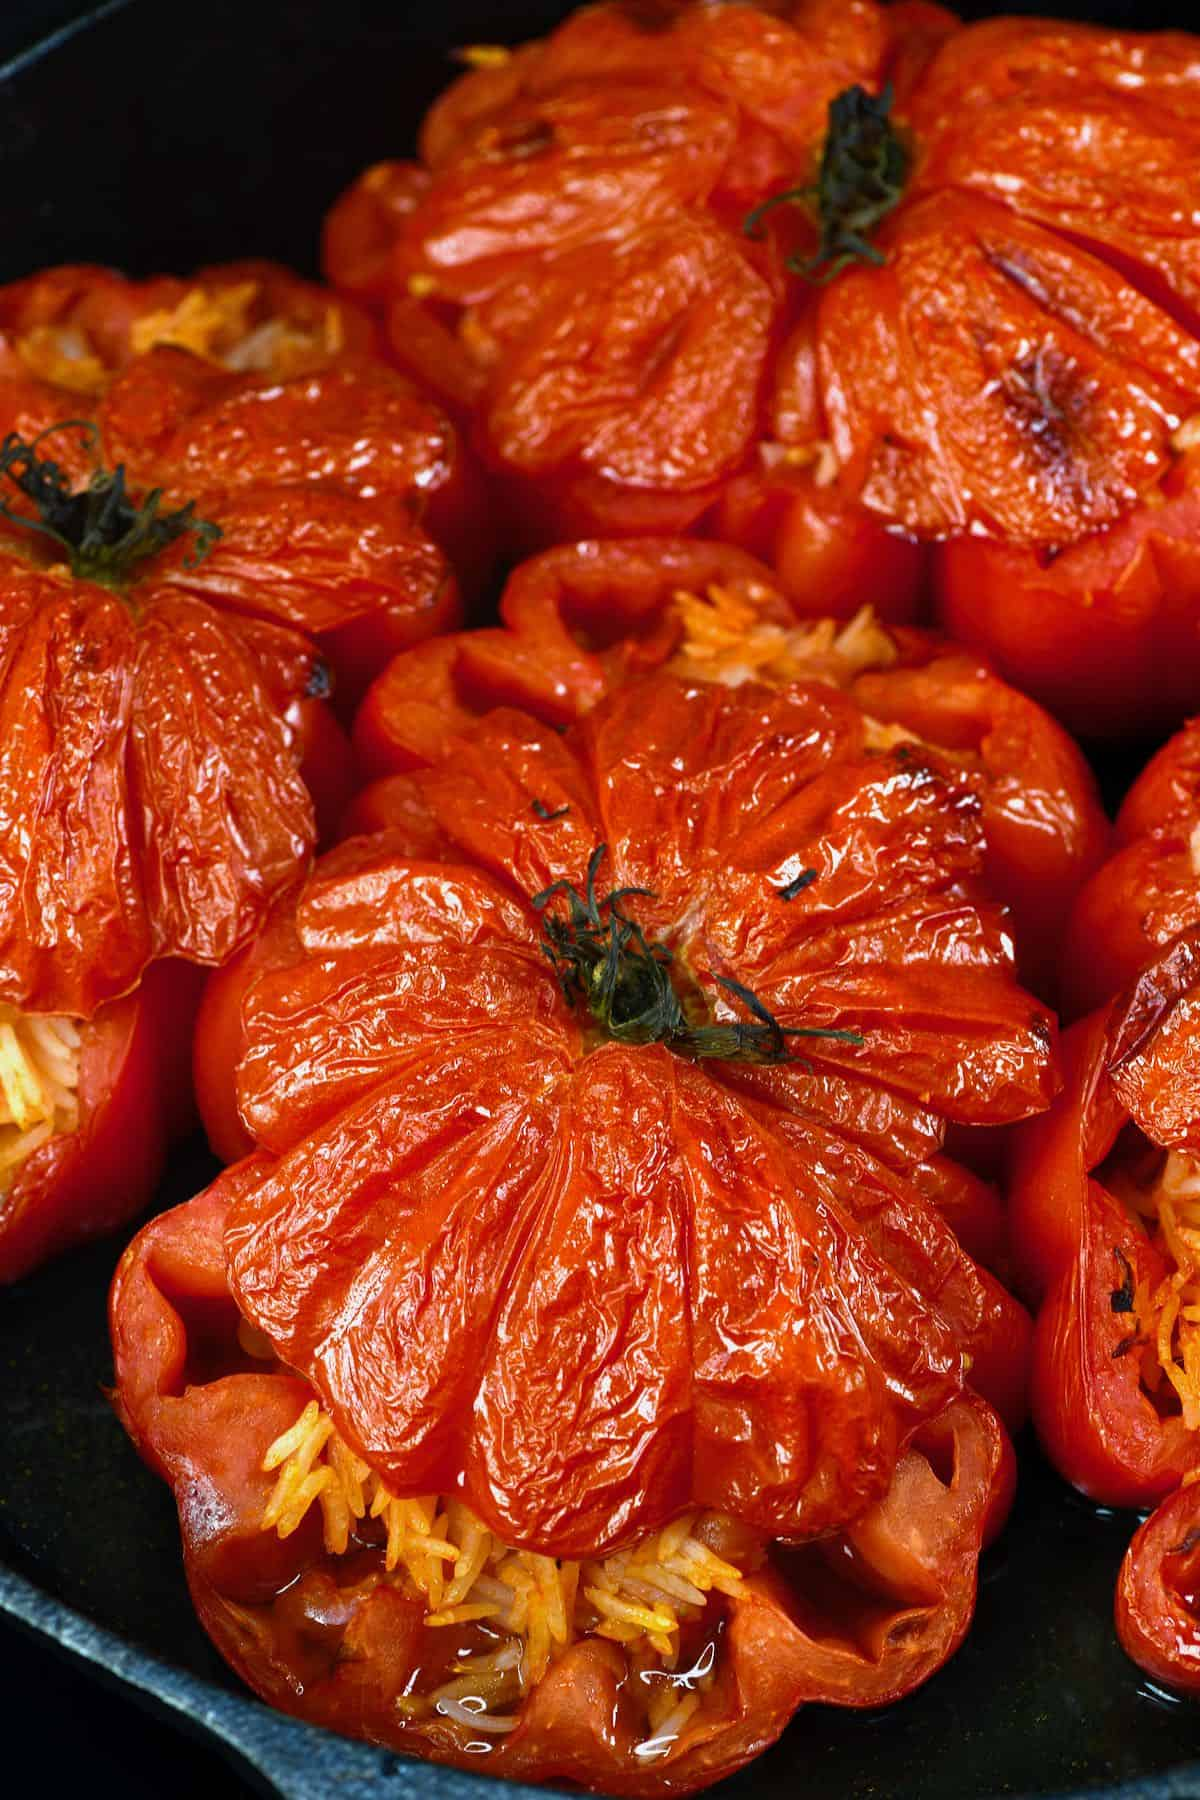 Stuffed tomatoes cooked in a pan